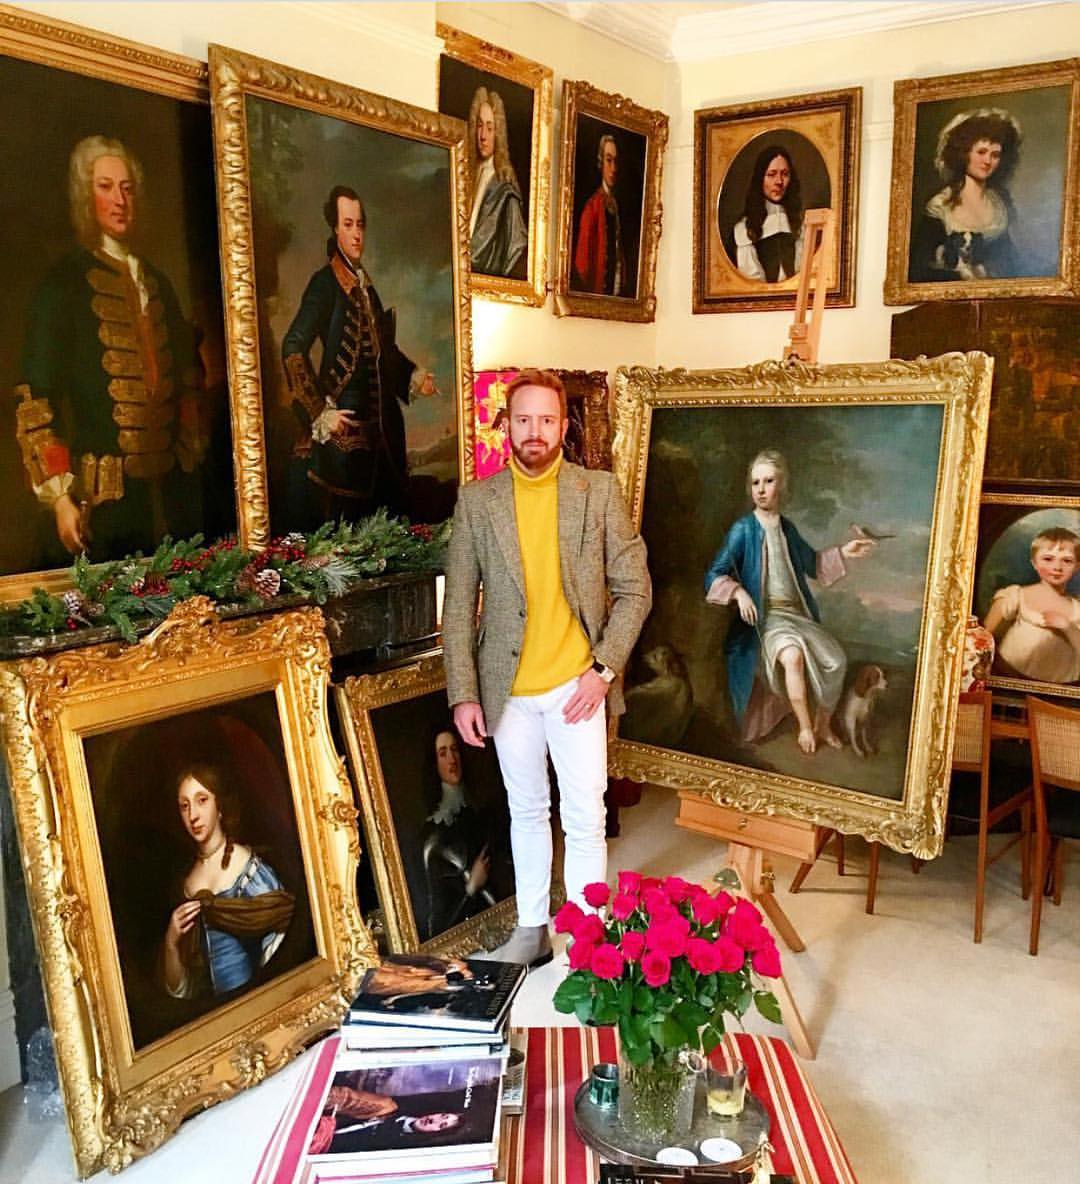 Nick Cox with his ornately framed portraits in his apartment